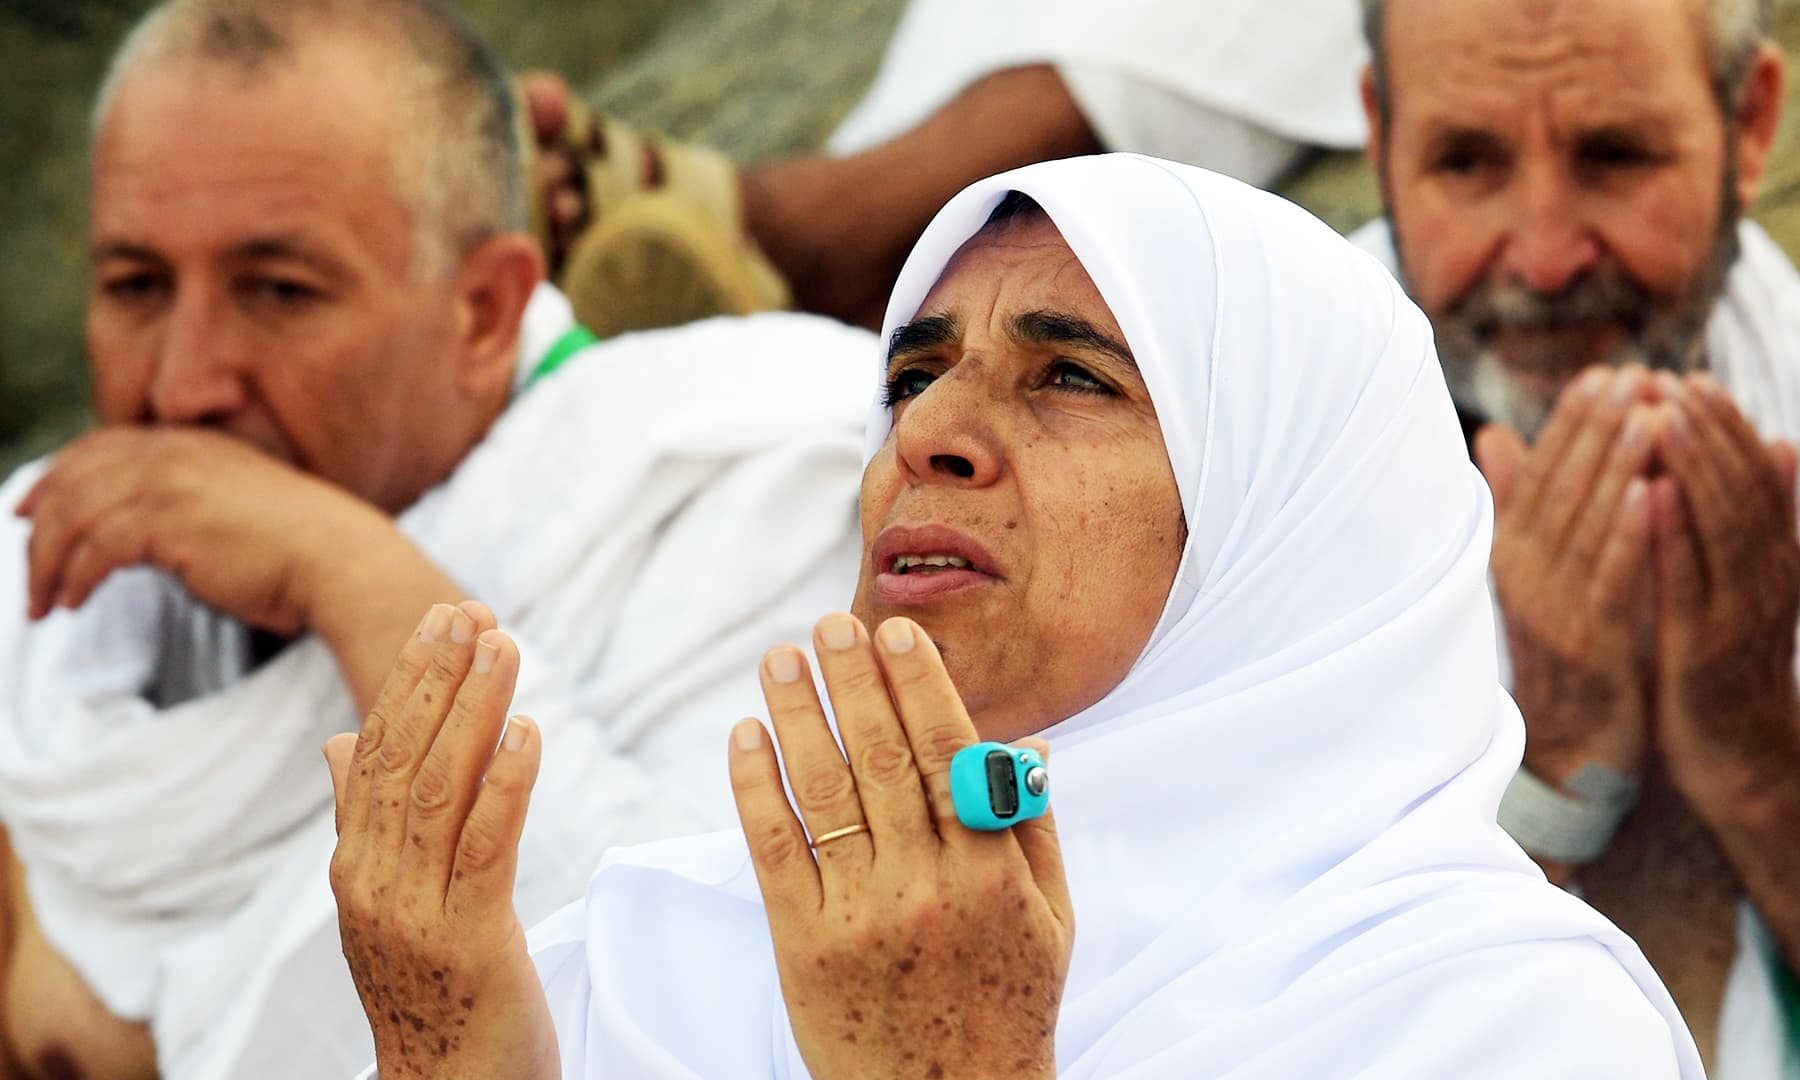 A woman prays at Mount Arafat, south east of Makkah on Saturday. — AFP